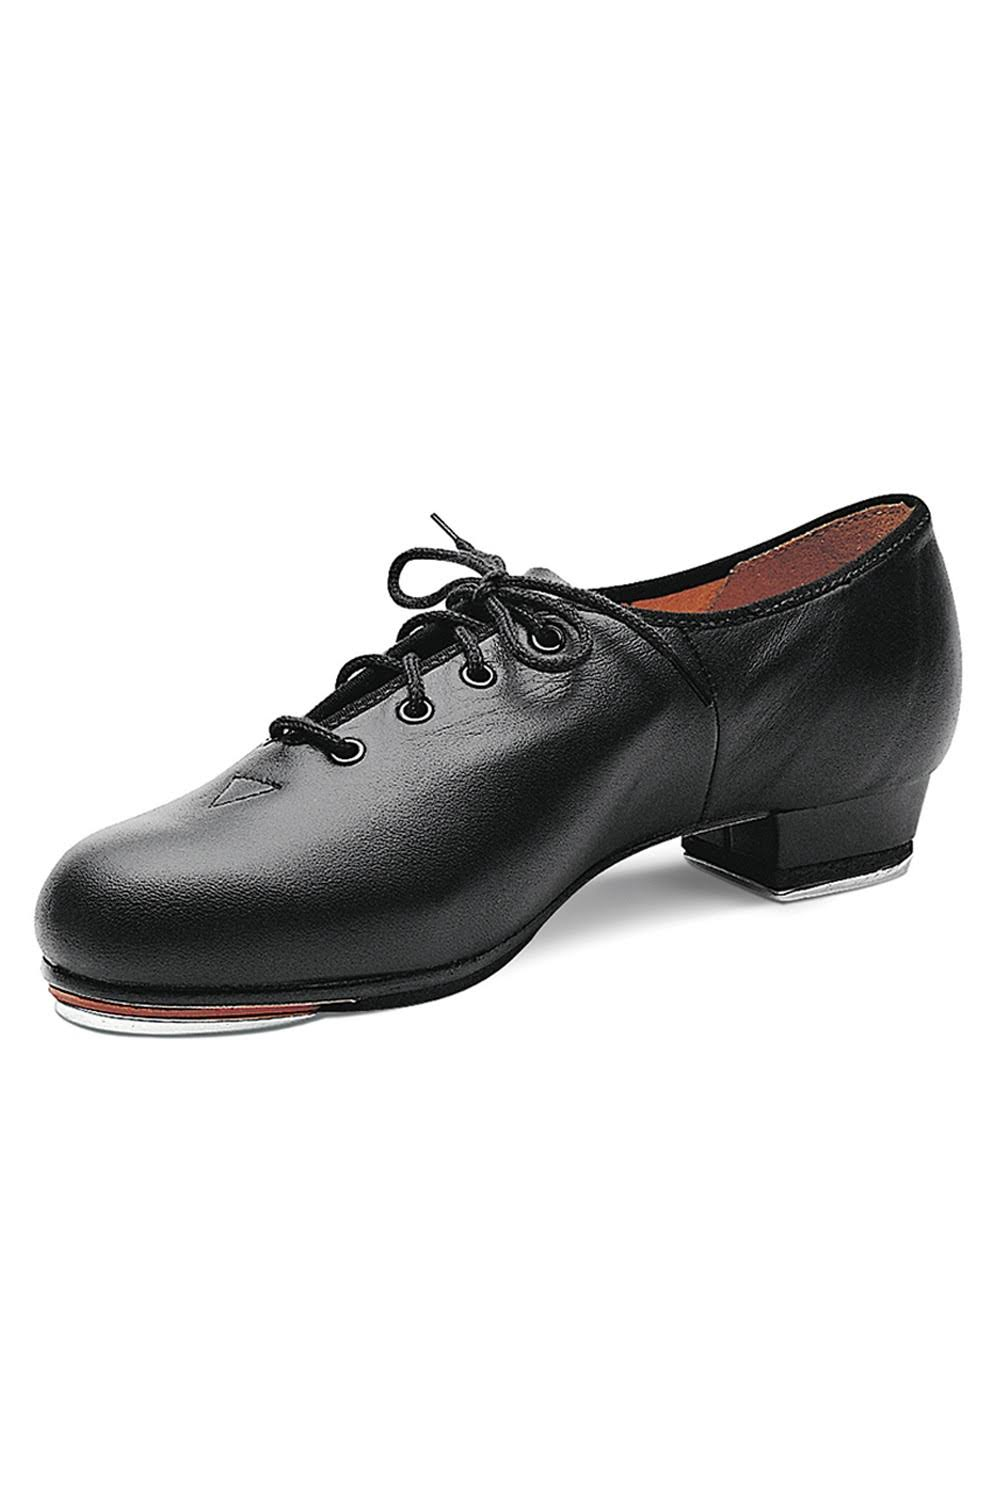 Bloch Jazz Tap - Men's